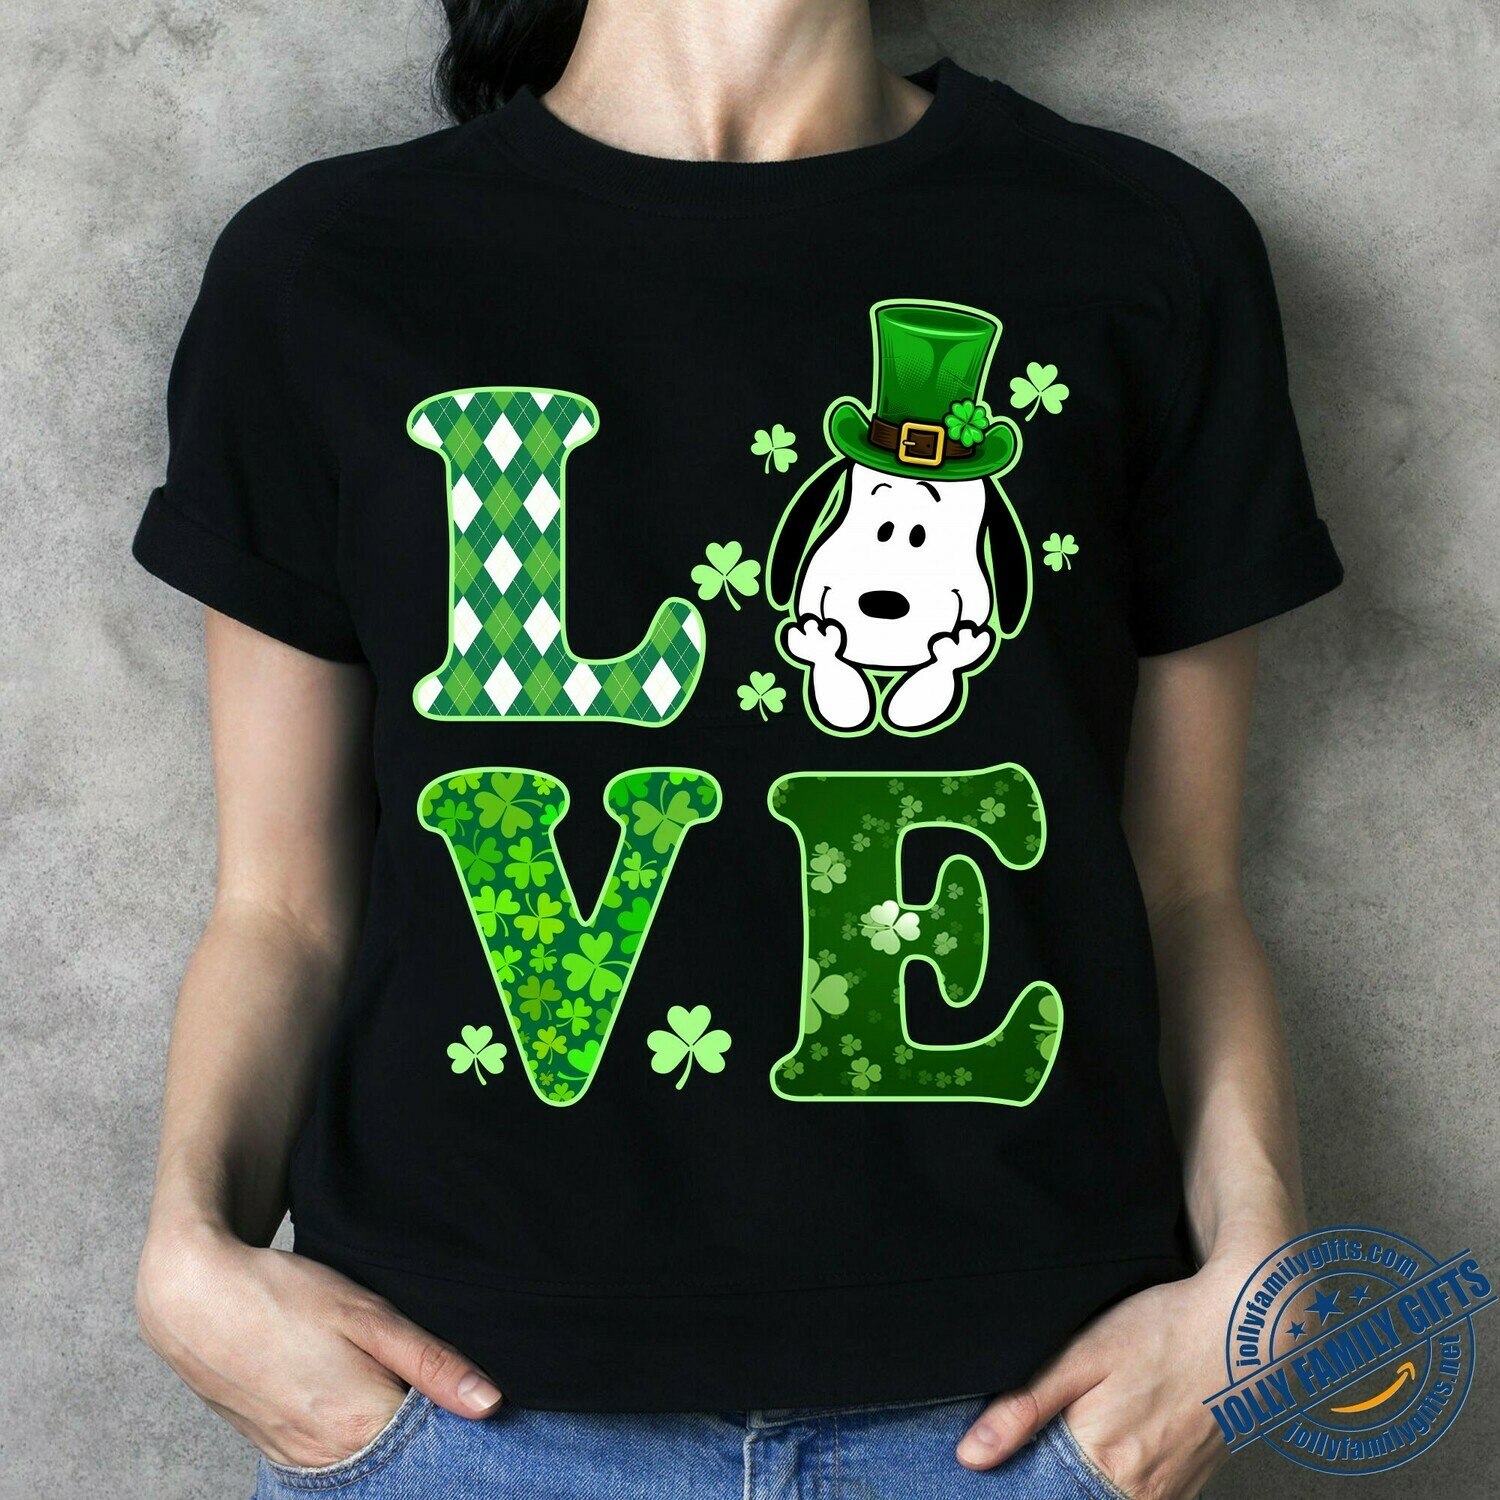 Snoopy Irish love st Patrick's Day with Green Hats,Peanuts Shamrock four leaf Clover Feelin' Lucky Day  Unisex T-Shirt Hoodie Sweatshirt Sweater Plus Size for Ladies Women Men Kids Youth Gifts Tee